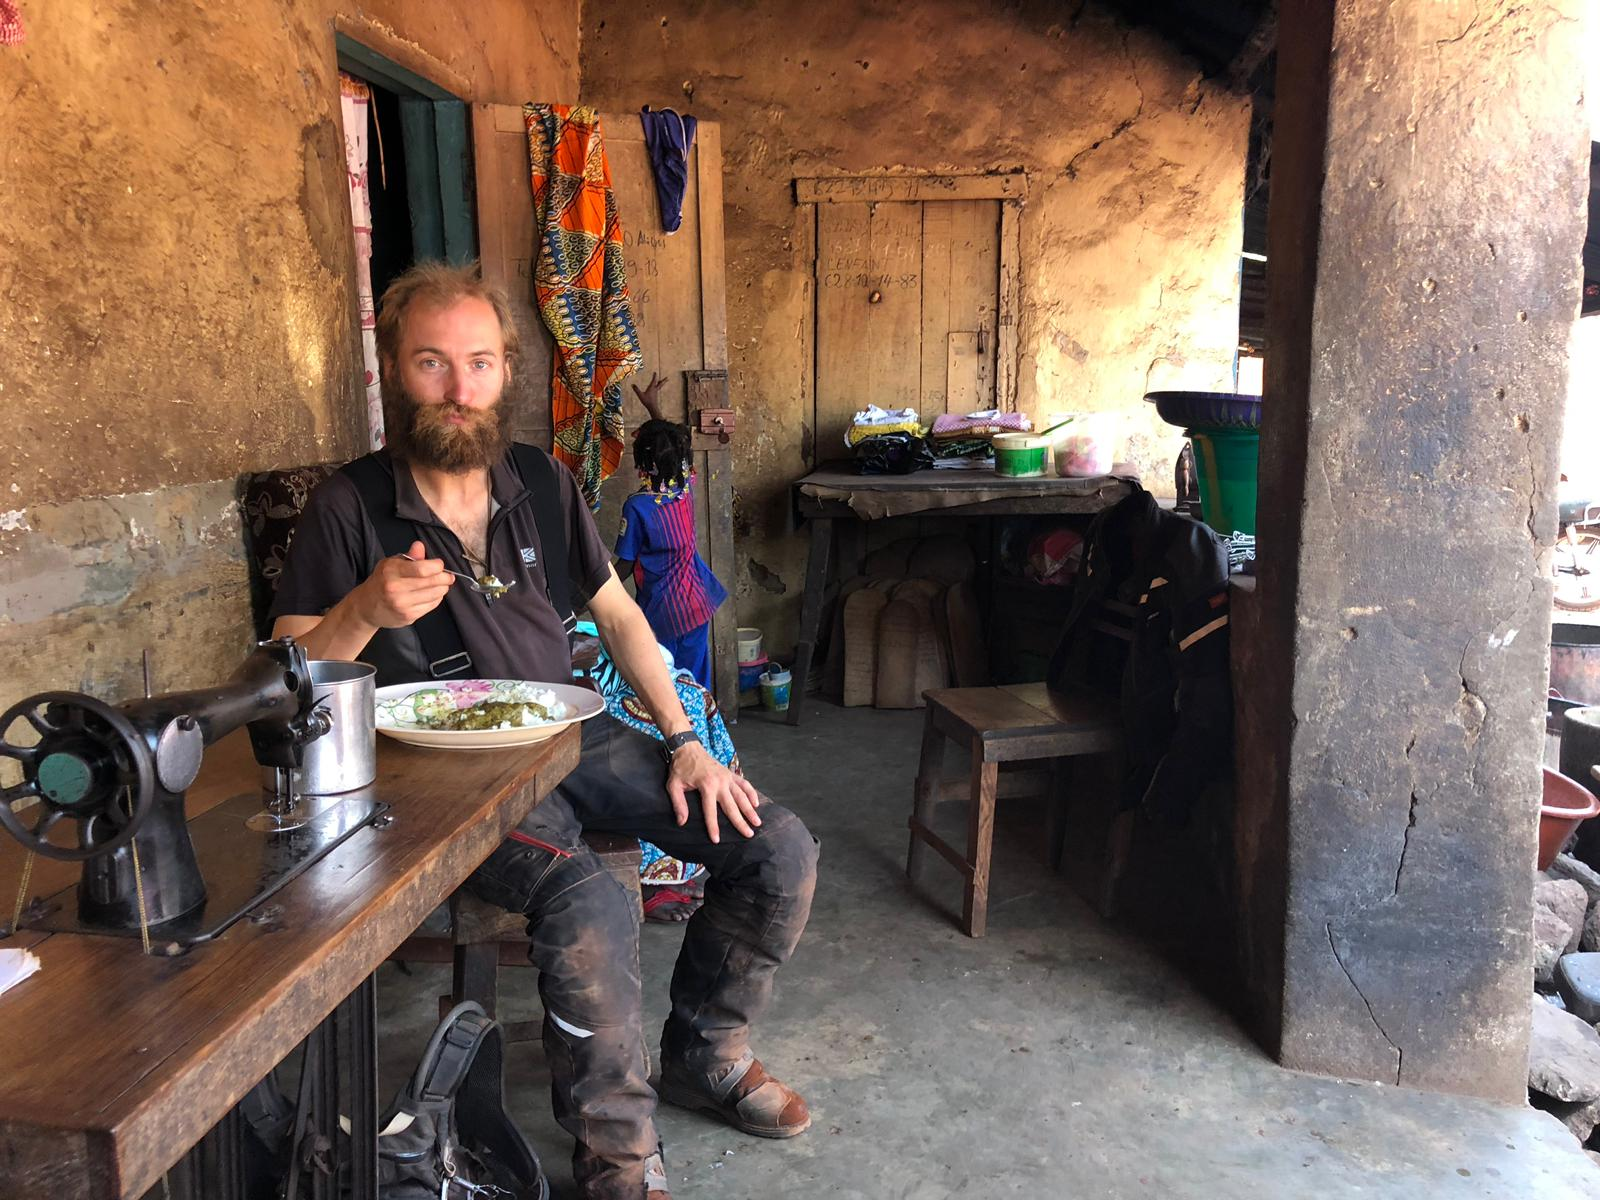 Eating rice and spinach in Boke, Guinea.